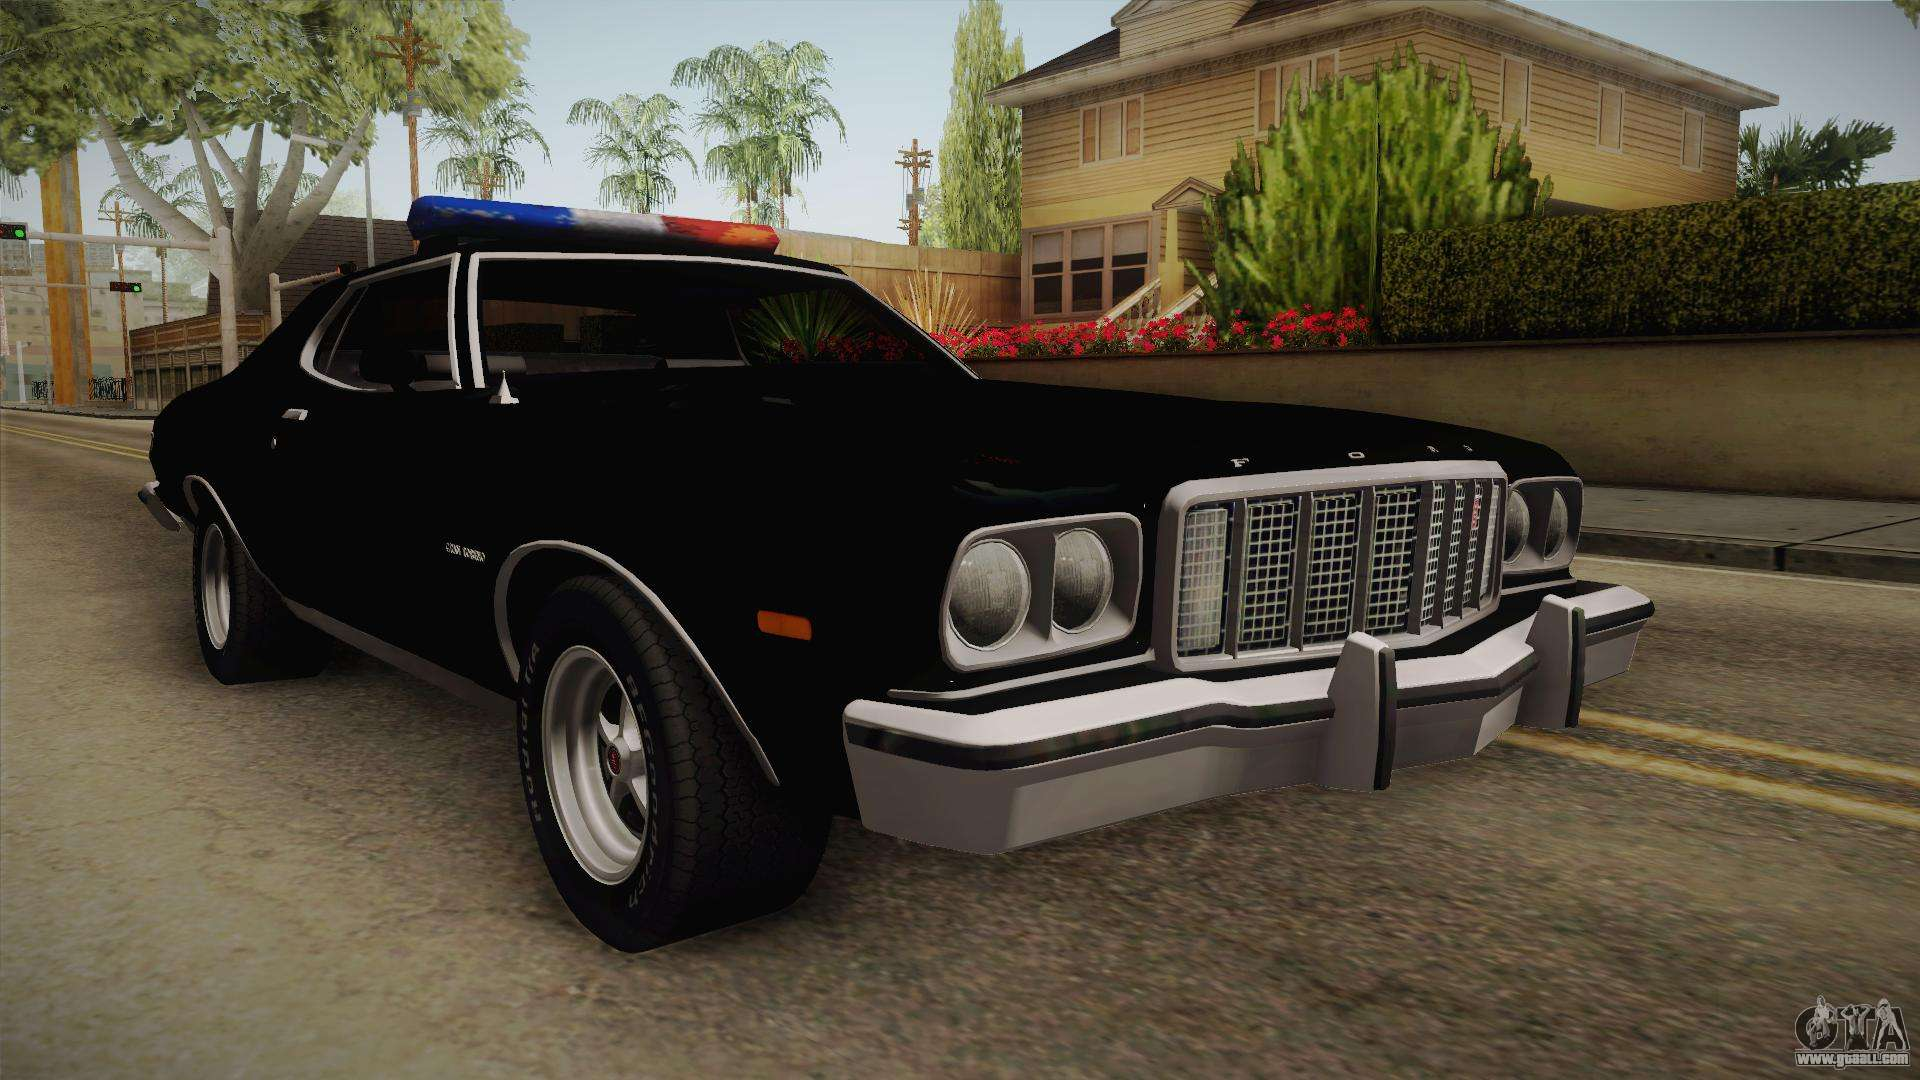 ford gran torino police lvpd 1975 for gta san andreas. Black Bedroom Furniture Sets. Home Design Ideas